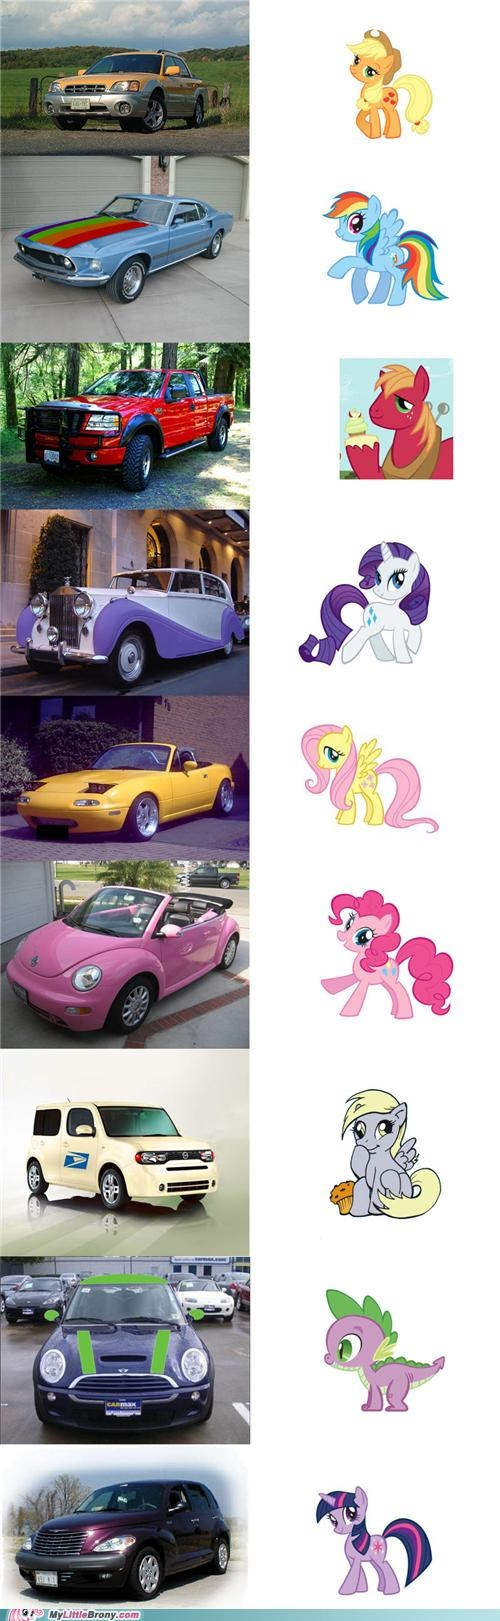 Quick, to the Ponymobile!